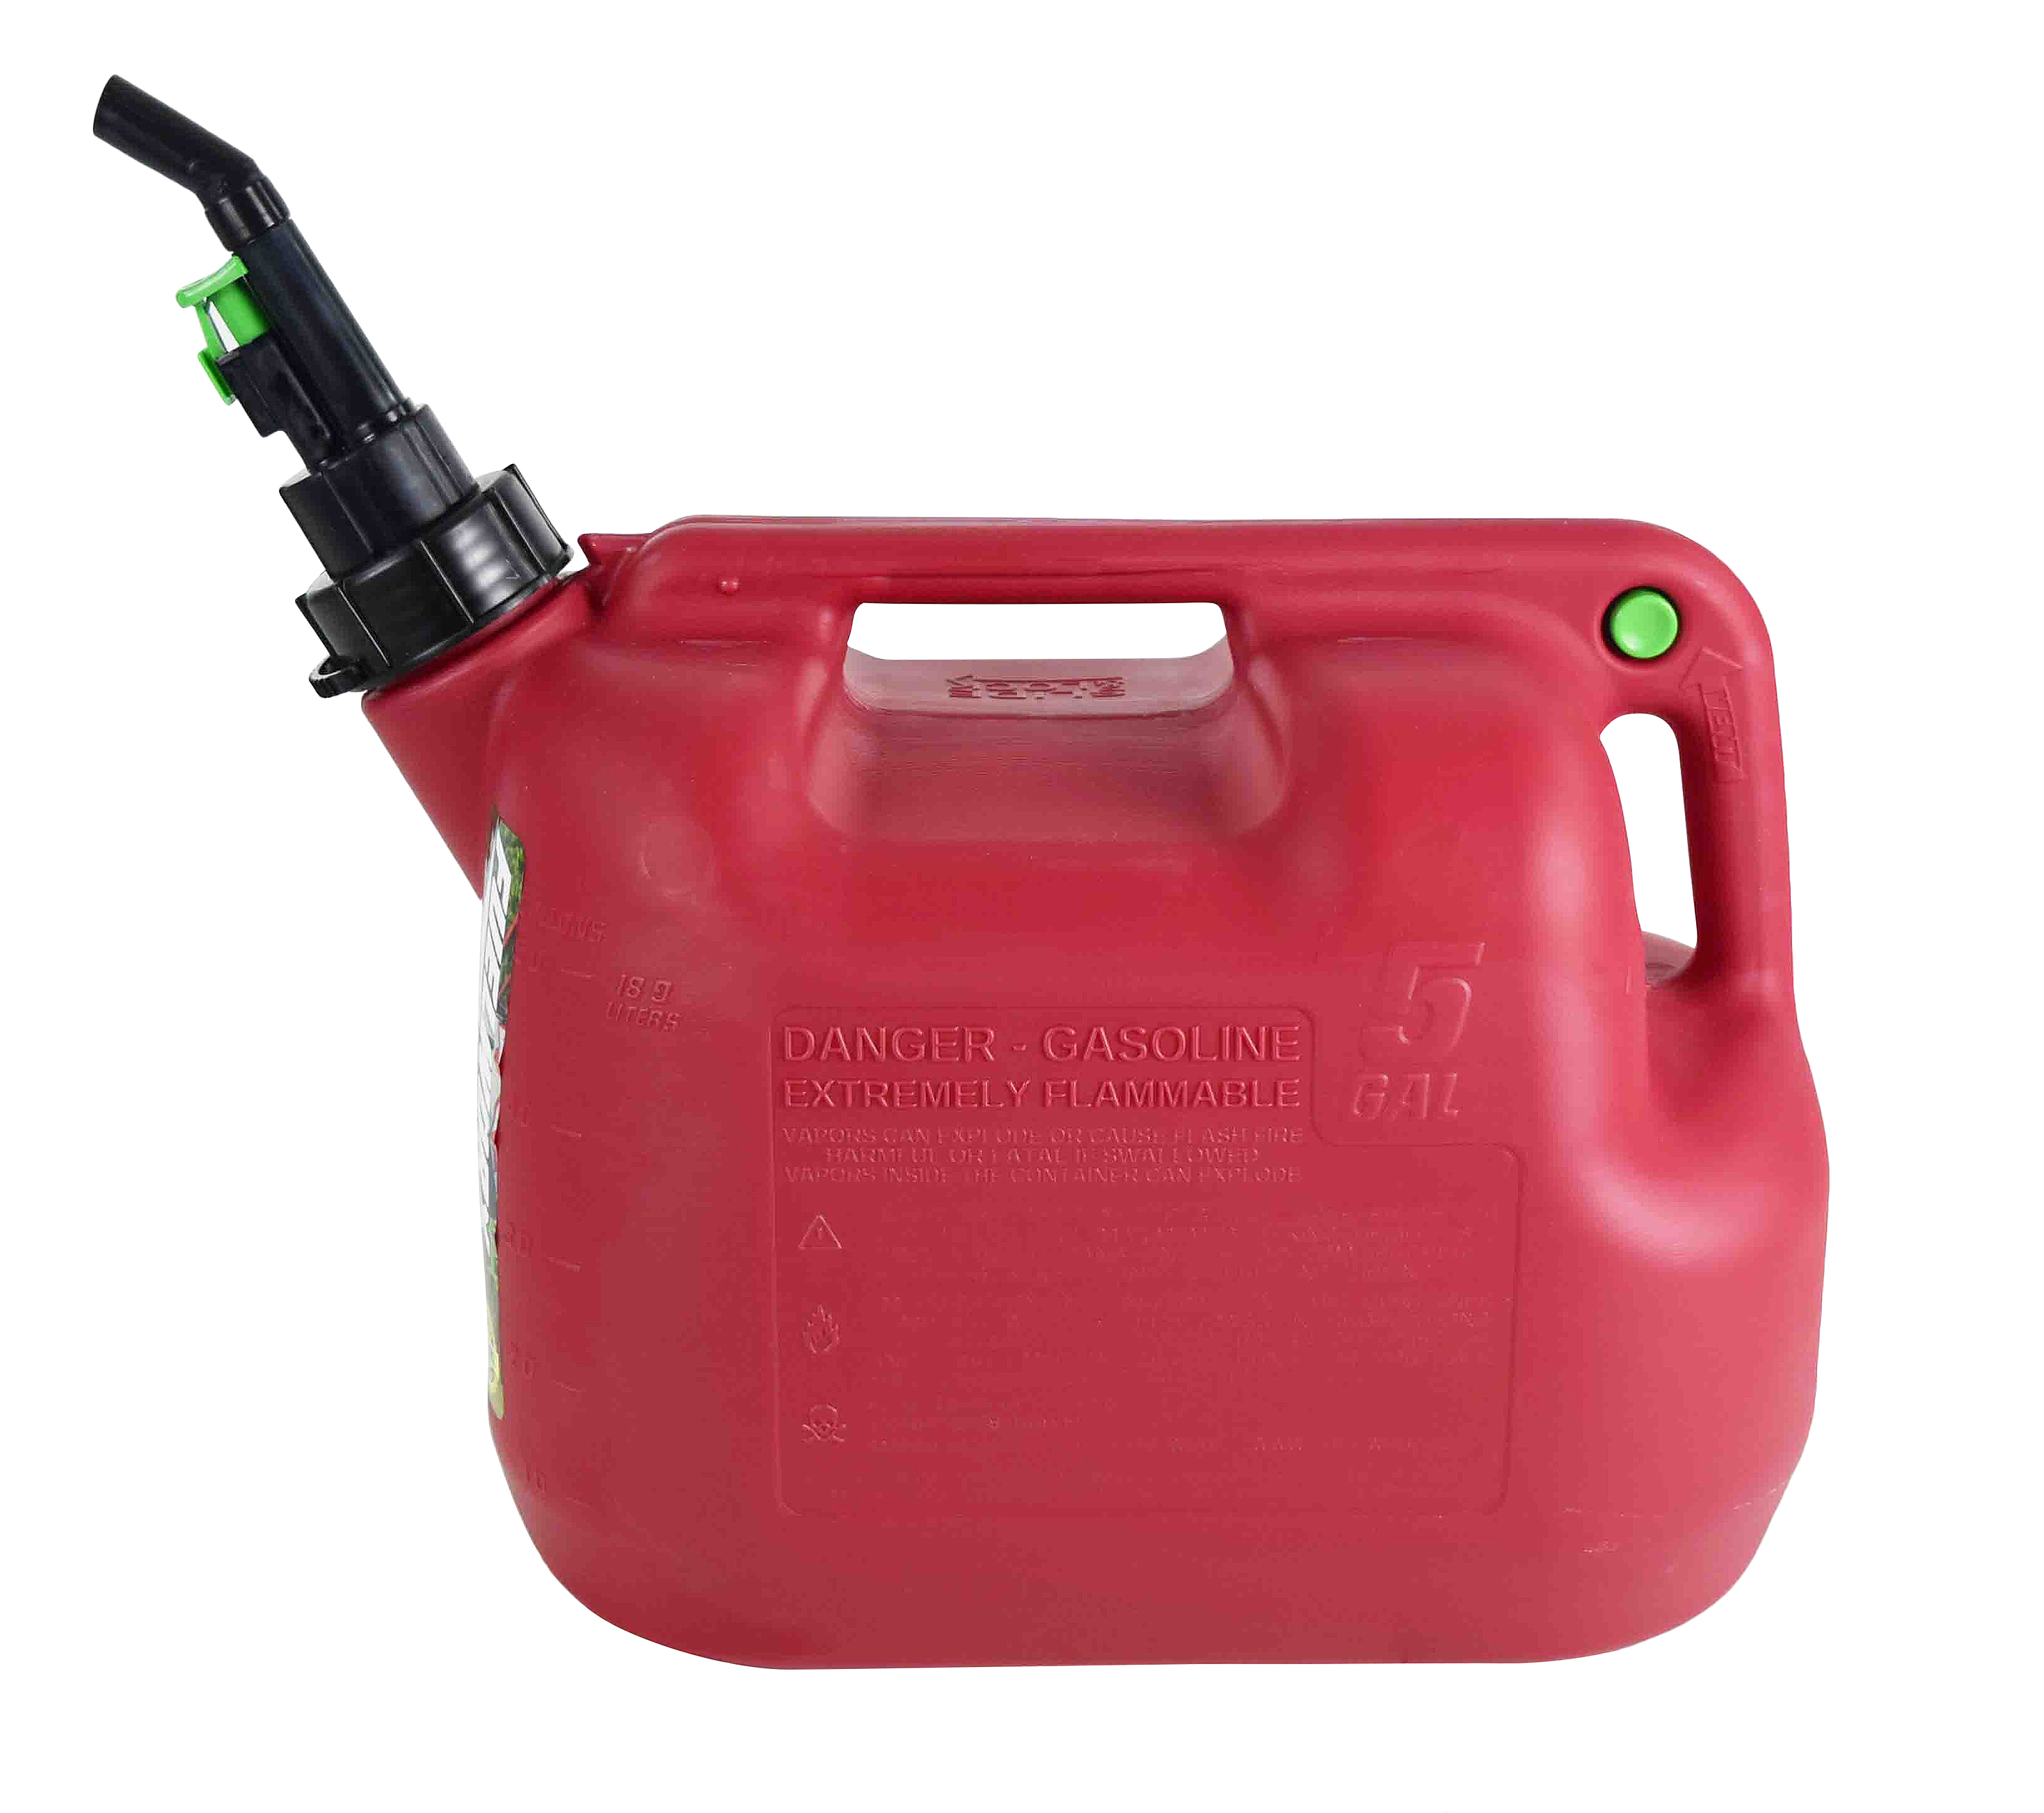 Fuelworx-Stackable-Easy-Pour-5-Gal-Vented-Fuel-Can-Made-in-USA-CARB-Compliant-image-4